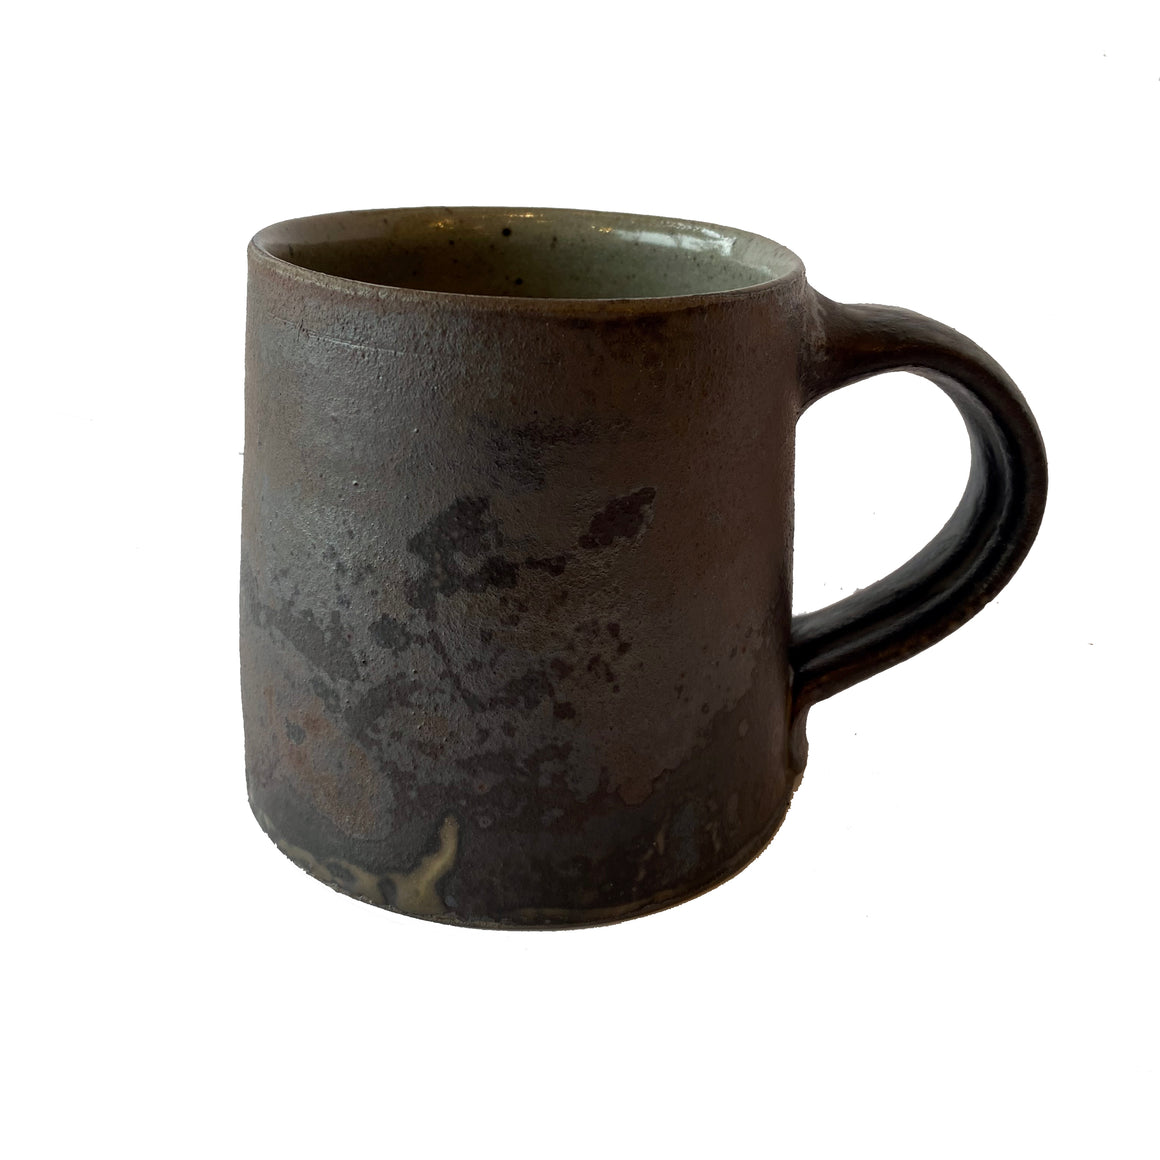 Wood-Fired Coffee Mug - Iron